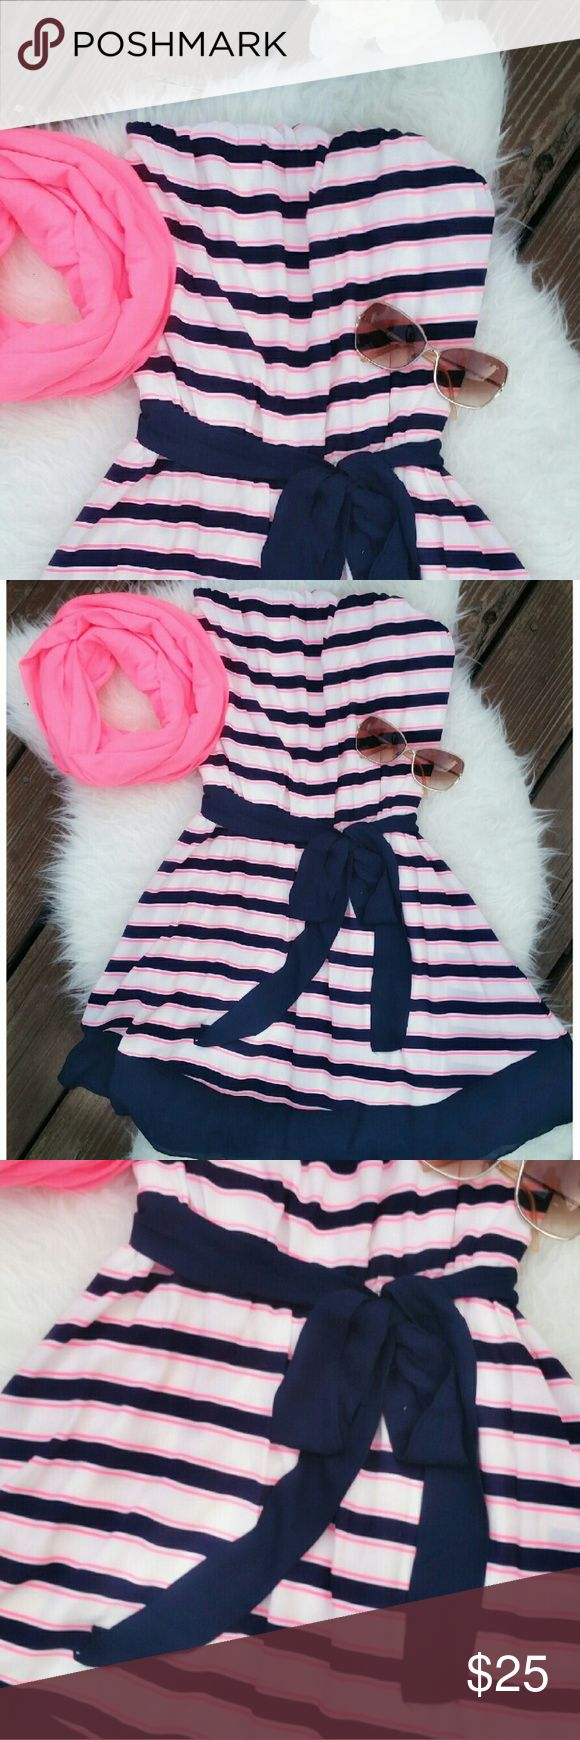 NEW ARRIVAL! Neon Pink n Navy Strapless Dress Super Femmy dress for the summer!! Neon pink n Navy Blue stripped with belt for bow.  Knee lenght  Elastic around the bust for comfort  Light fabric, lined, not see thru Dresses Midi